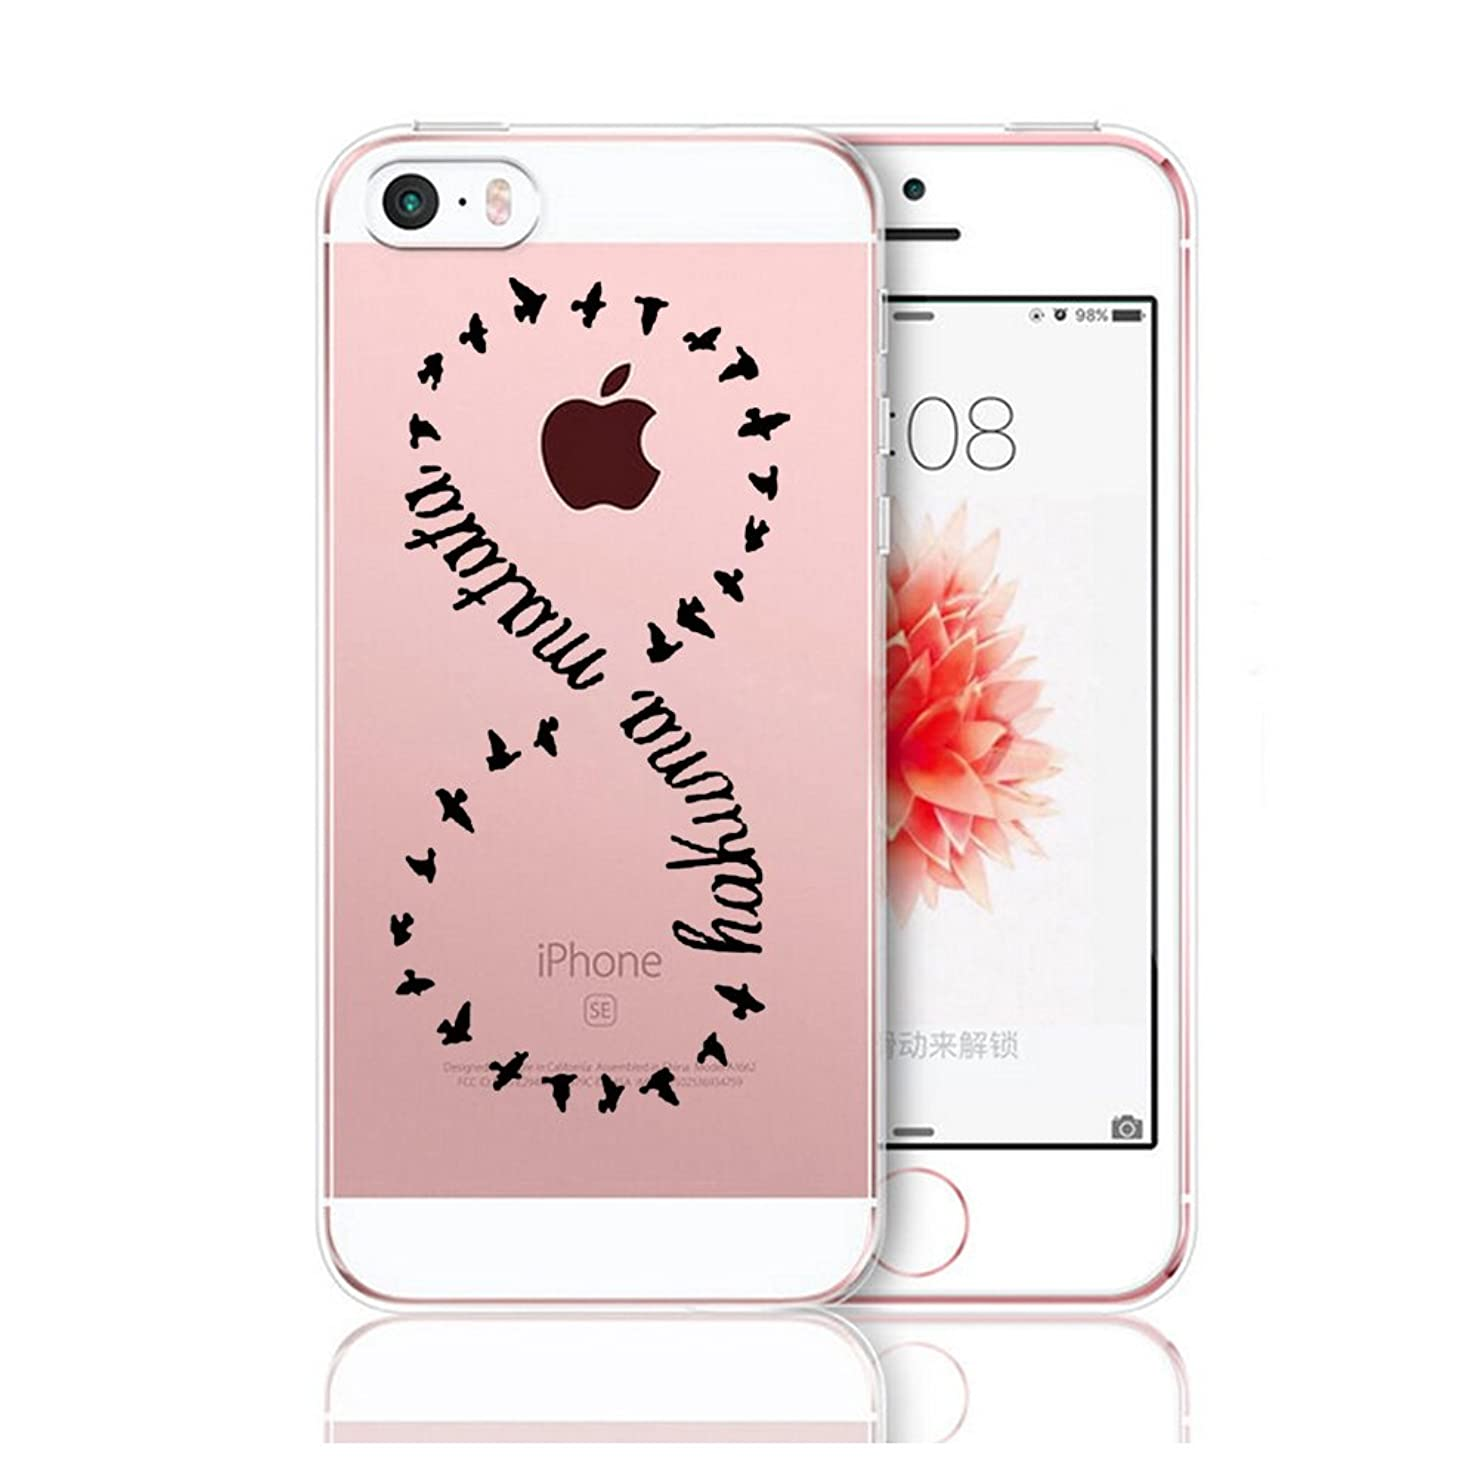 Matop Compatible/Replacement for iPhone 5S 5 SE Case Crystal Clear Transparent Ultra Thin Slim Shockproof Protective Soft Silicone Cover Cute TPU for iPhone5S iPhone5 iPhone SE (Eight)